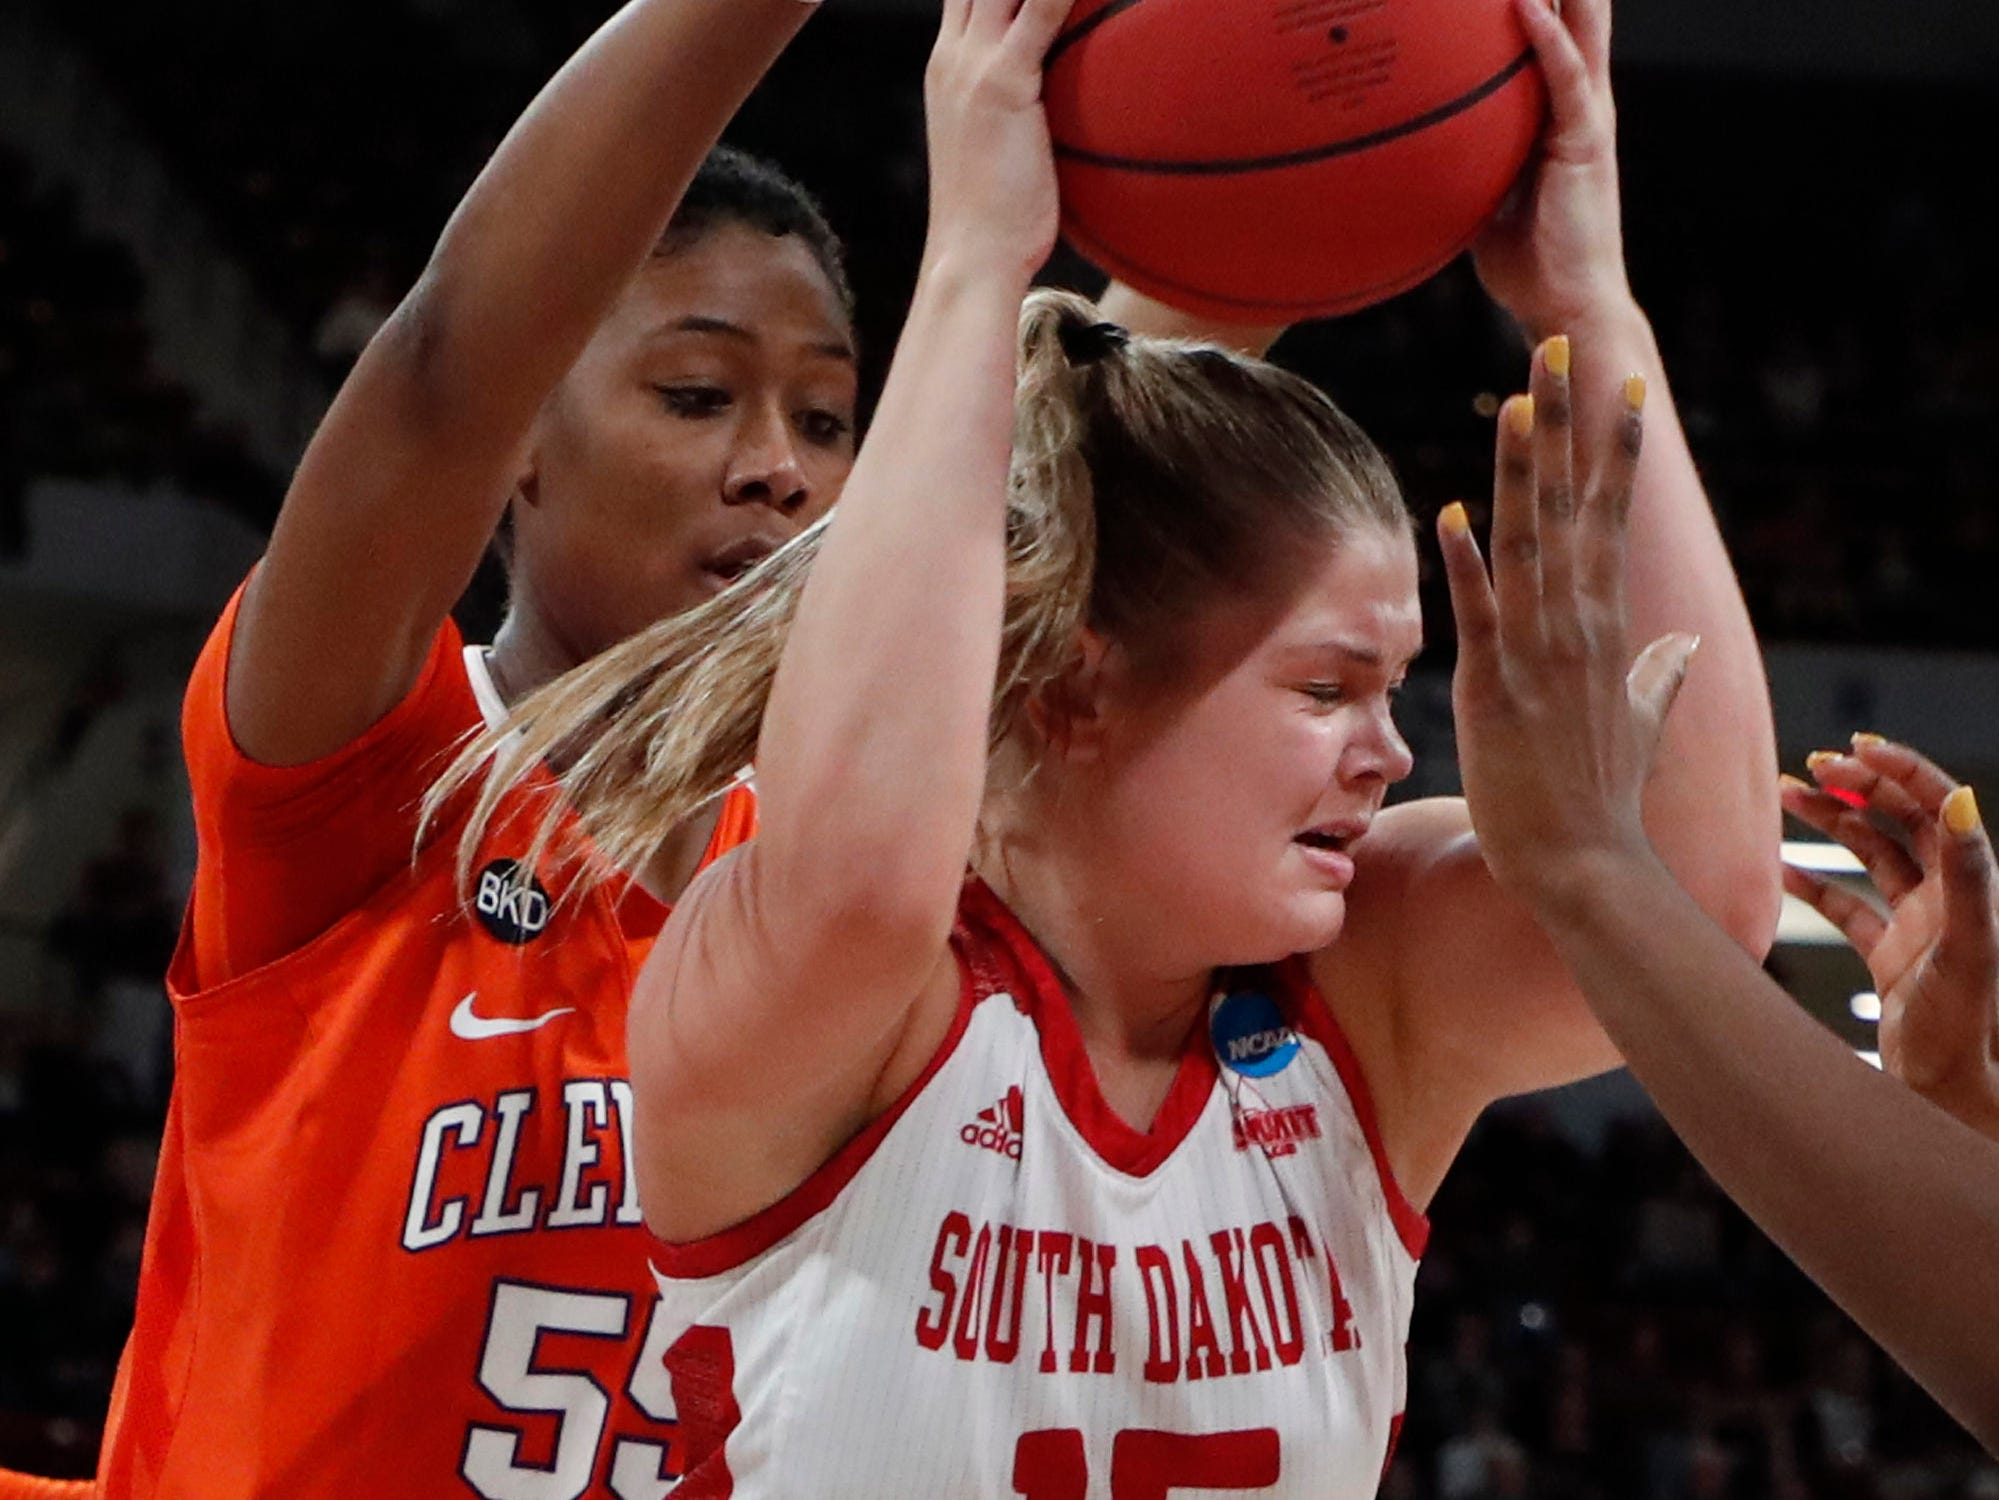 South Dakota forward Taylor Frederick (15) is trapped by Clemson forward Tylar Bennett (55) as she attempts to pass during the second half of a first round women's college basketball game in the NCAA Tournament in Starkville, Miss., Friday, March 22, 2019. (AP Photo/Rogelio V. Solis)